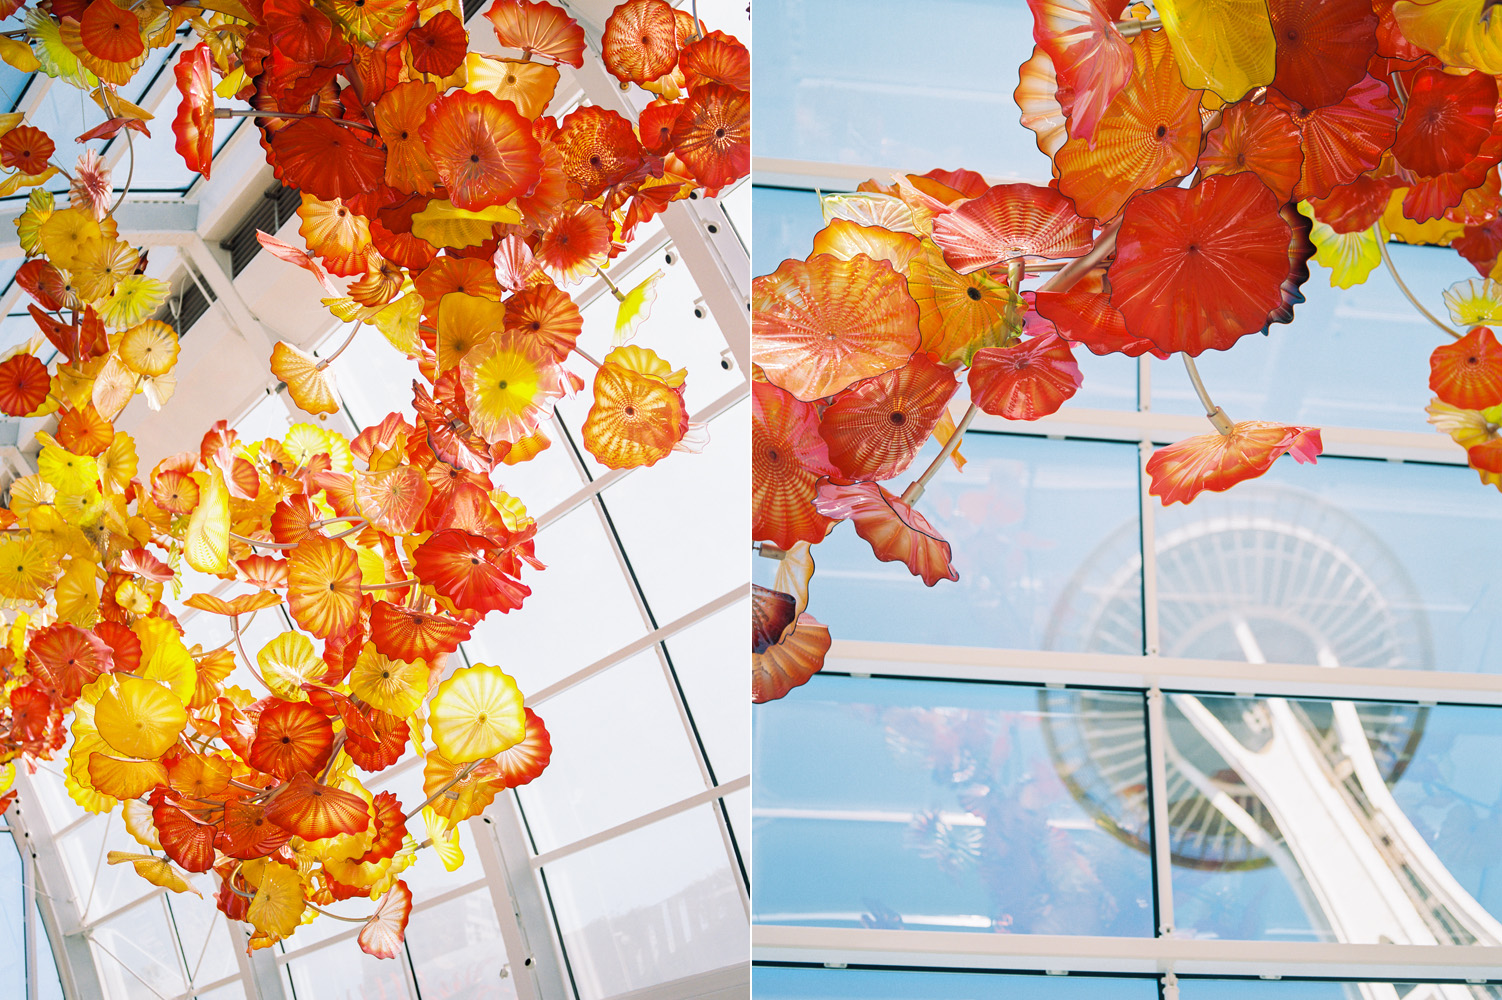 Chihuly Garden and Glass Seattle Wedding Venue Photography by the Space Needle